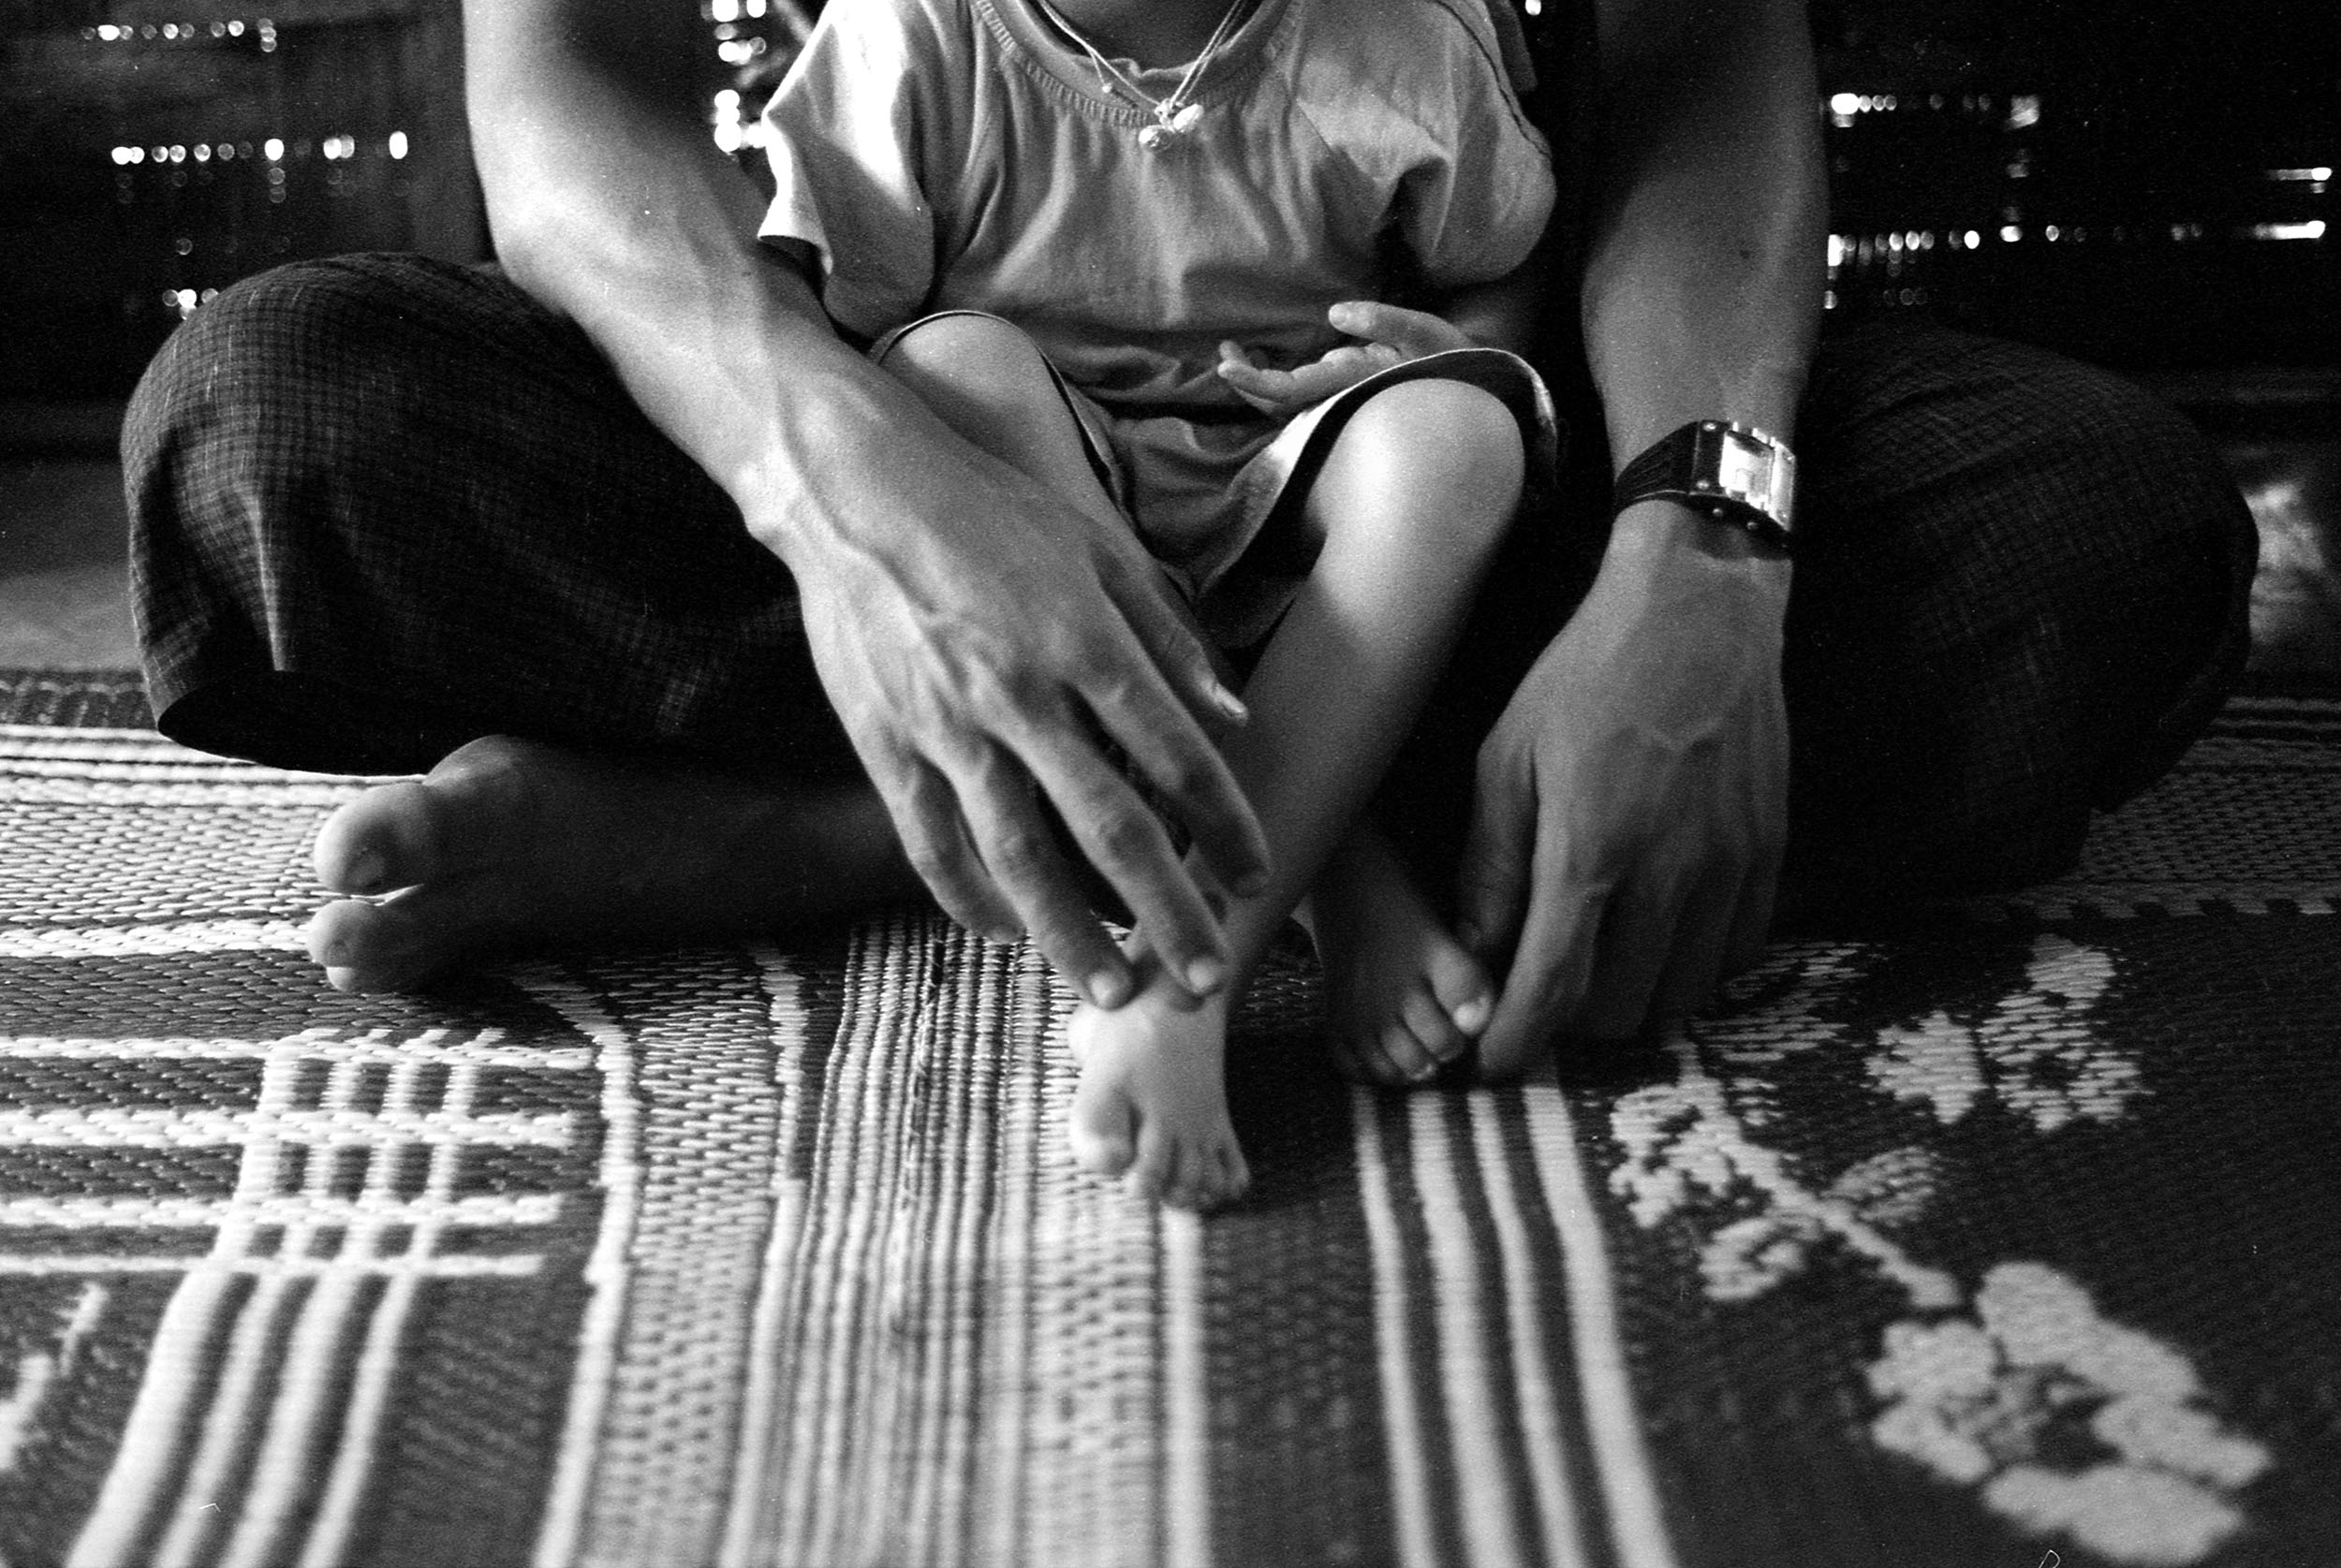 Kyaw Thura reunited with his four year old son. He was a child soldier, incarcerated for many escape attempts.